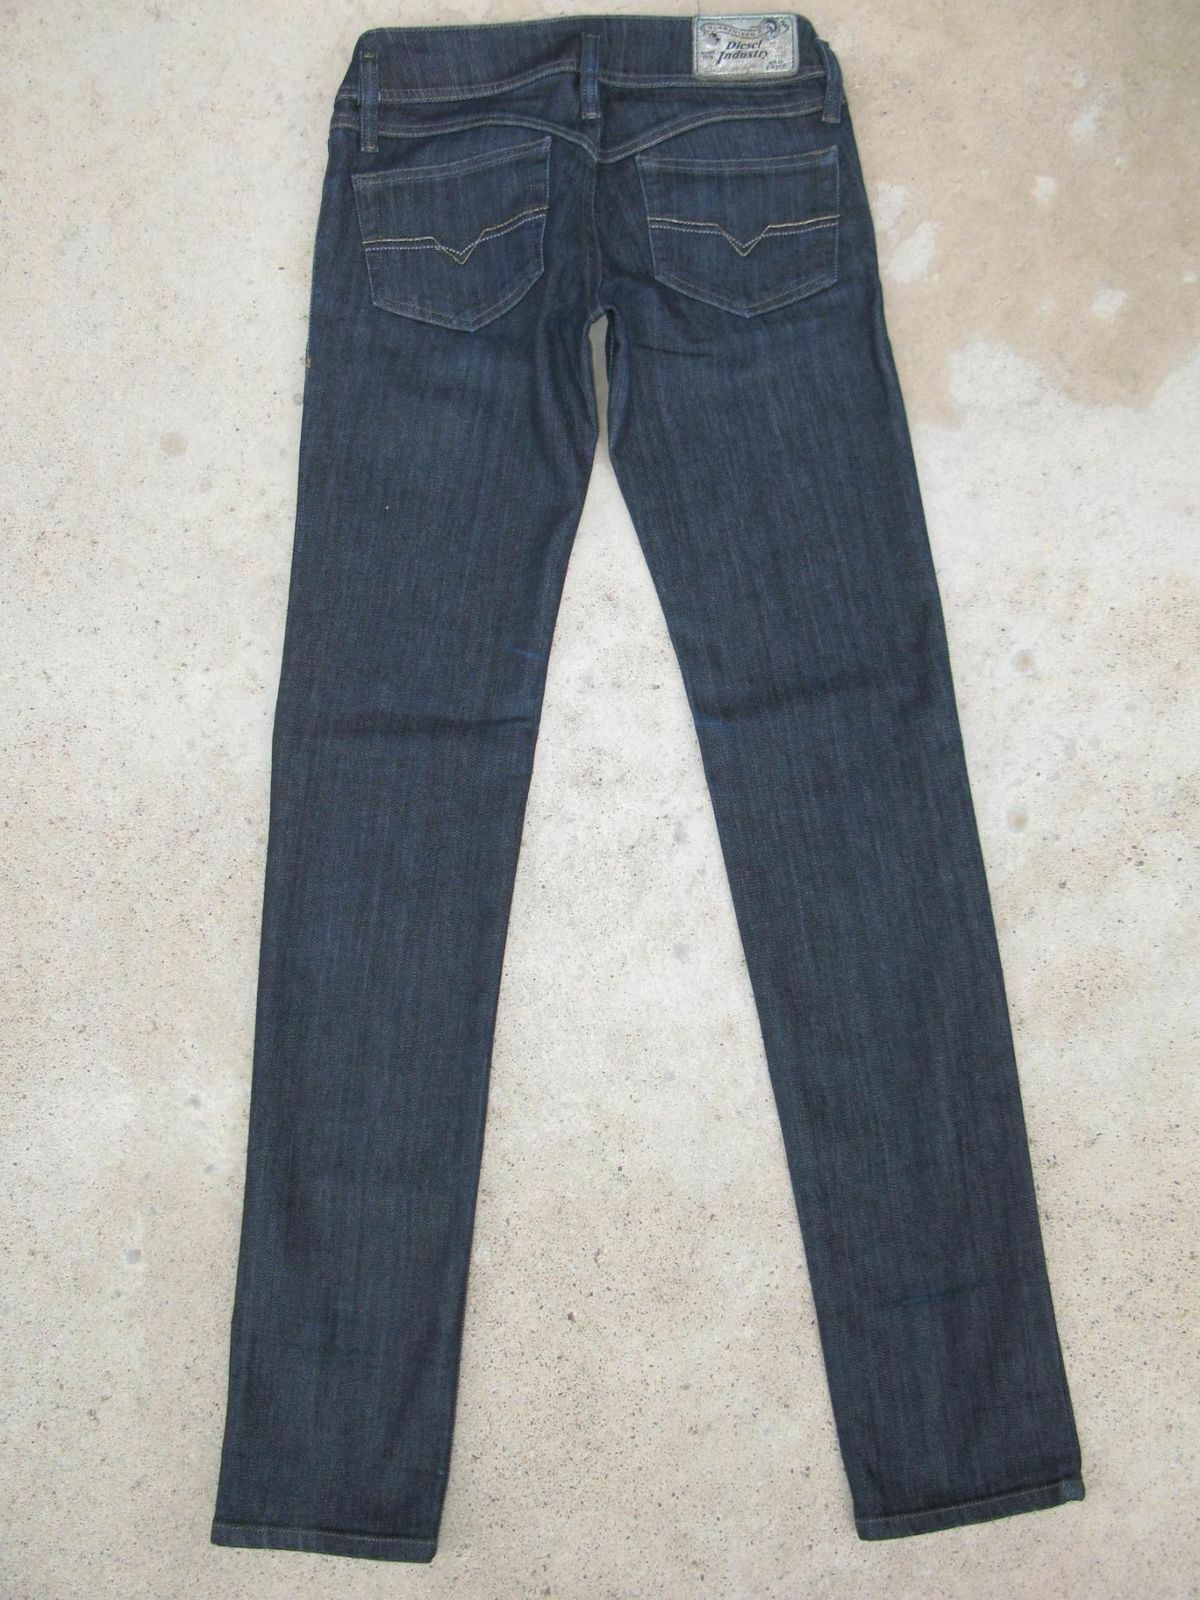 Diesel Womens Matic Skinny Jeans Sz 26 Low Slim Dark Wash 8WZ Stretch